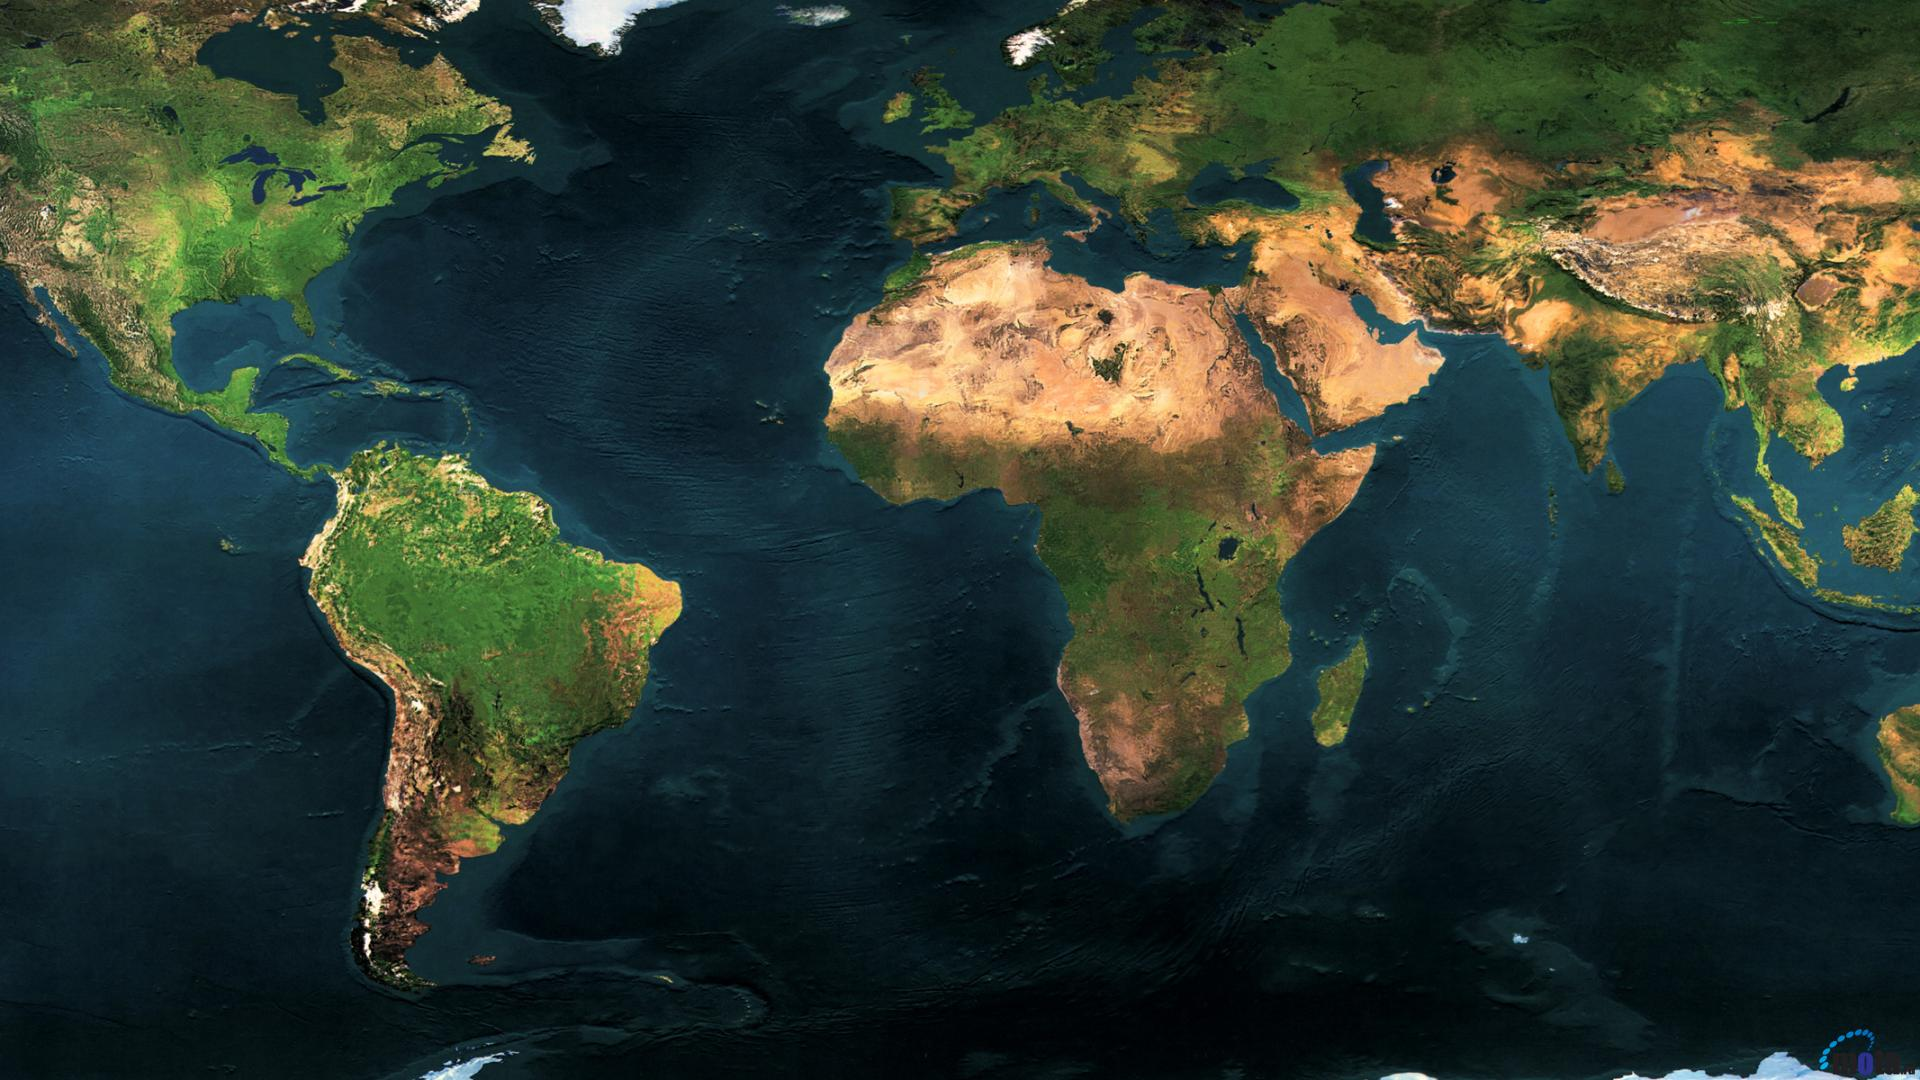 Download Wallpaper Earth Map Dual Monitor 1920 x 1080 HDTV 1080p 1920x1080